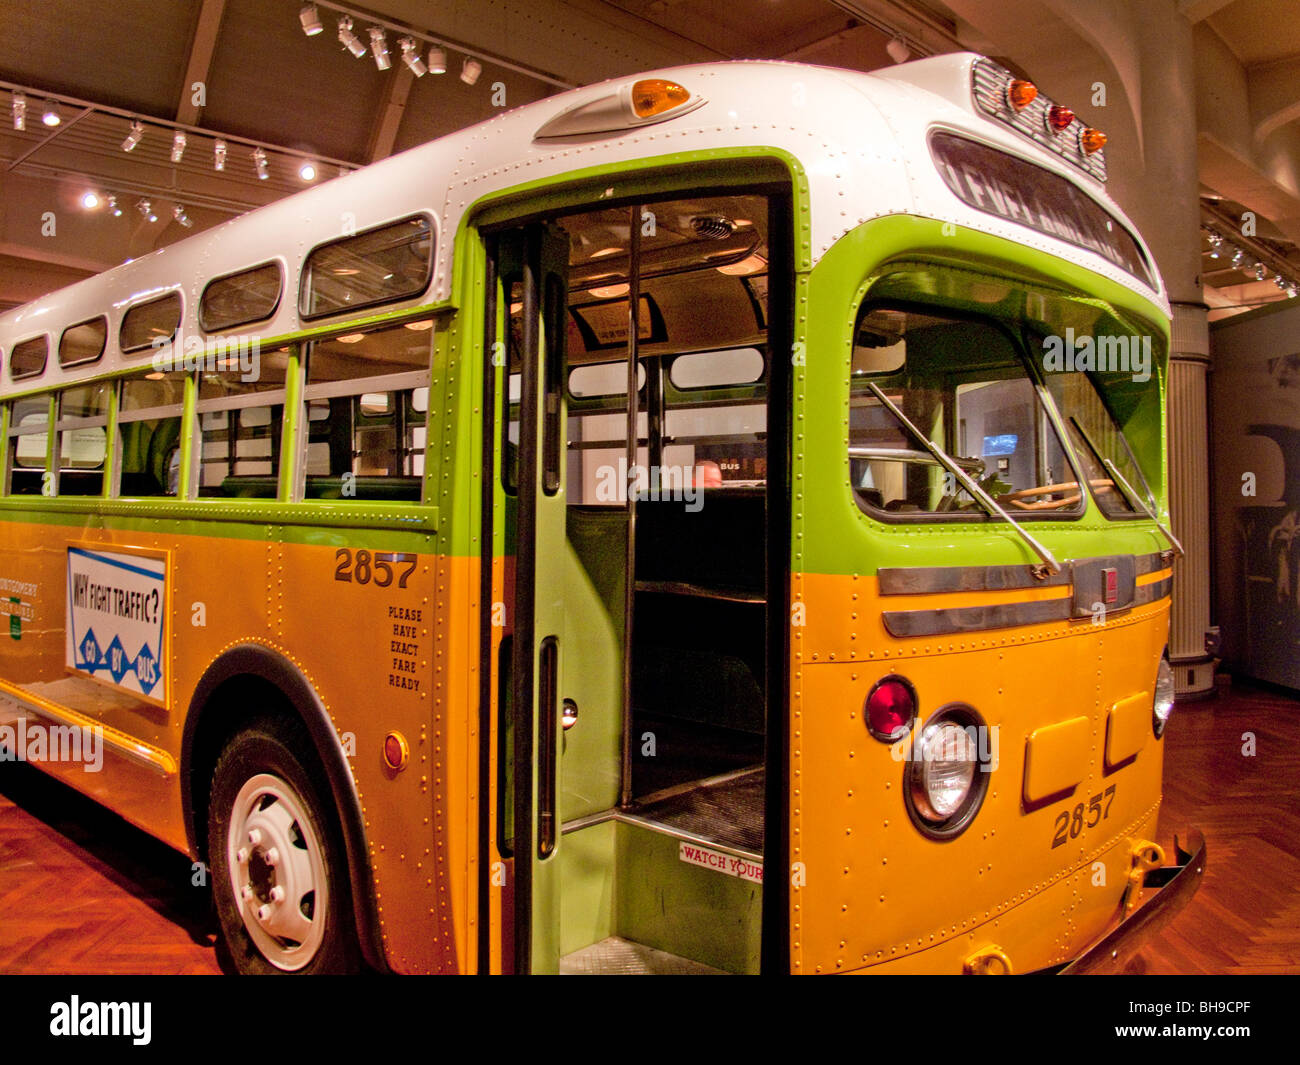 The Montgomery, Alabama bus in which civil rights pioneer Rosa Parks refused to yield her seat to a white passenger - Stock Image